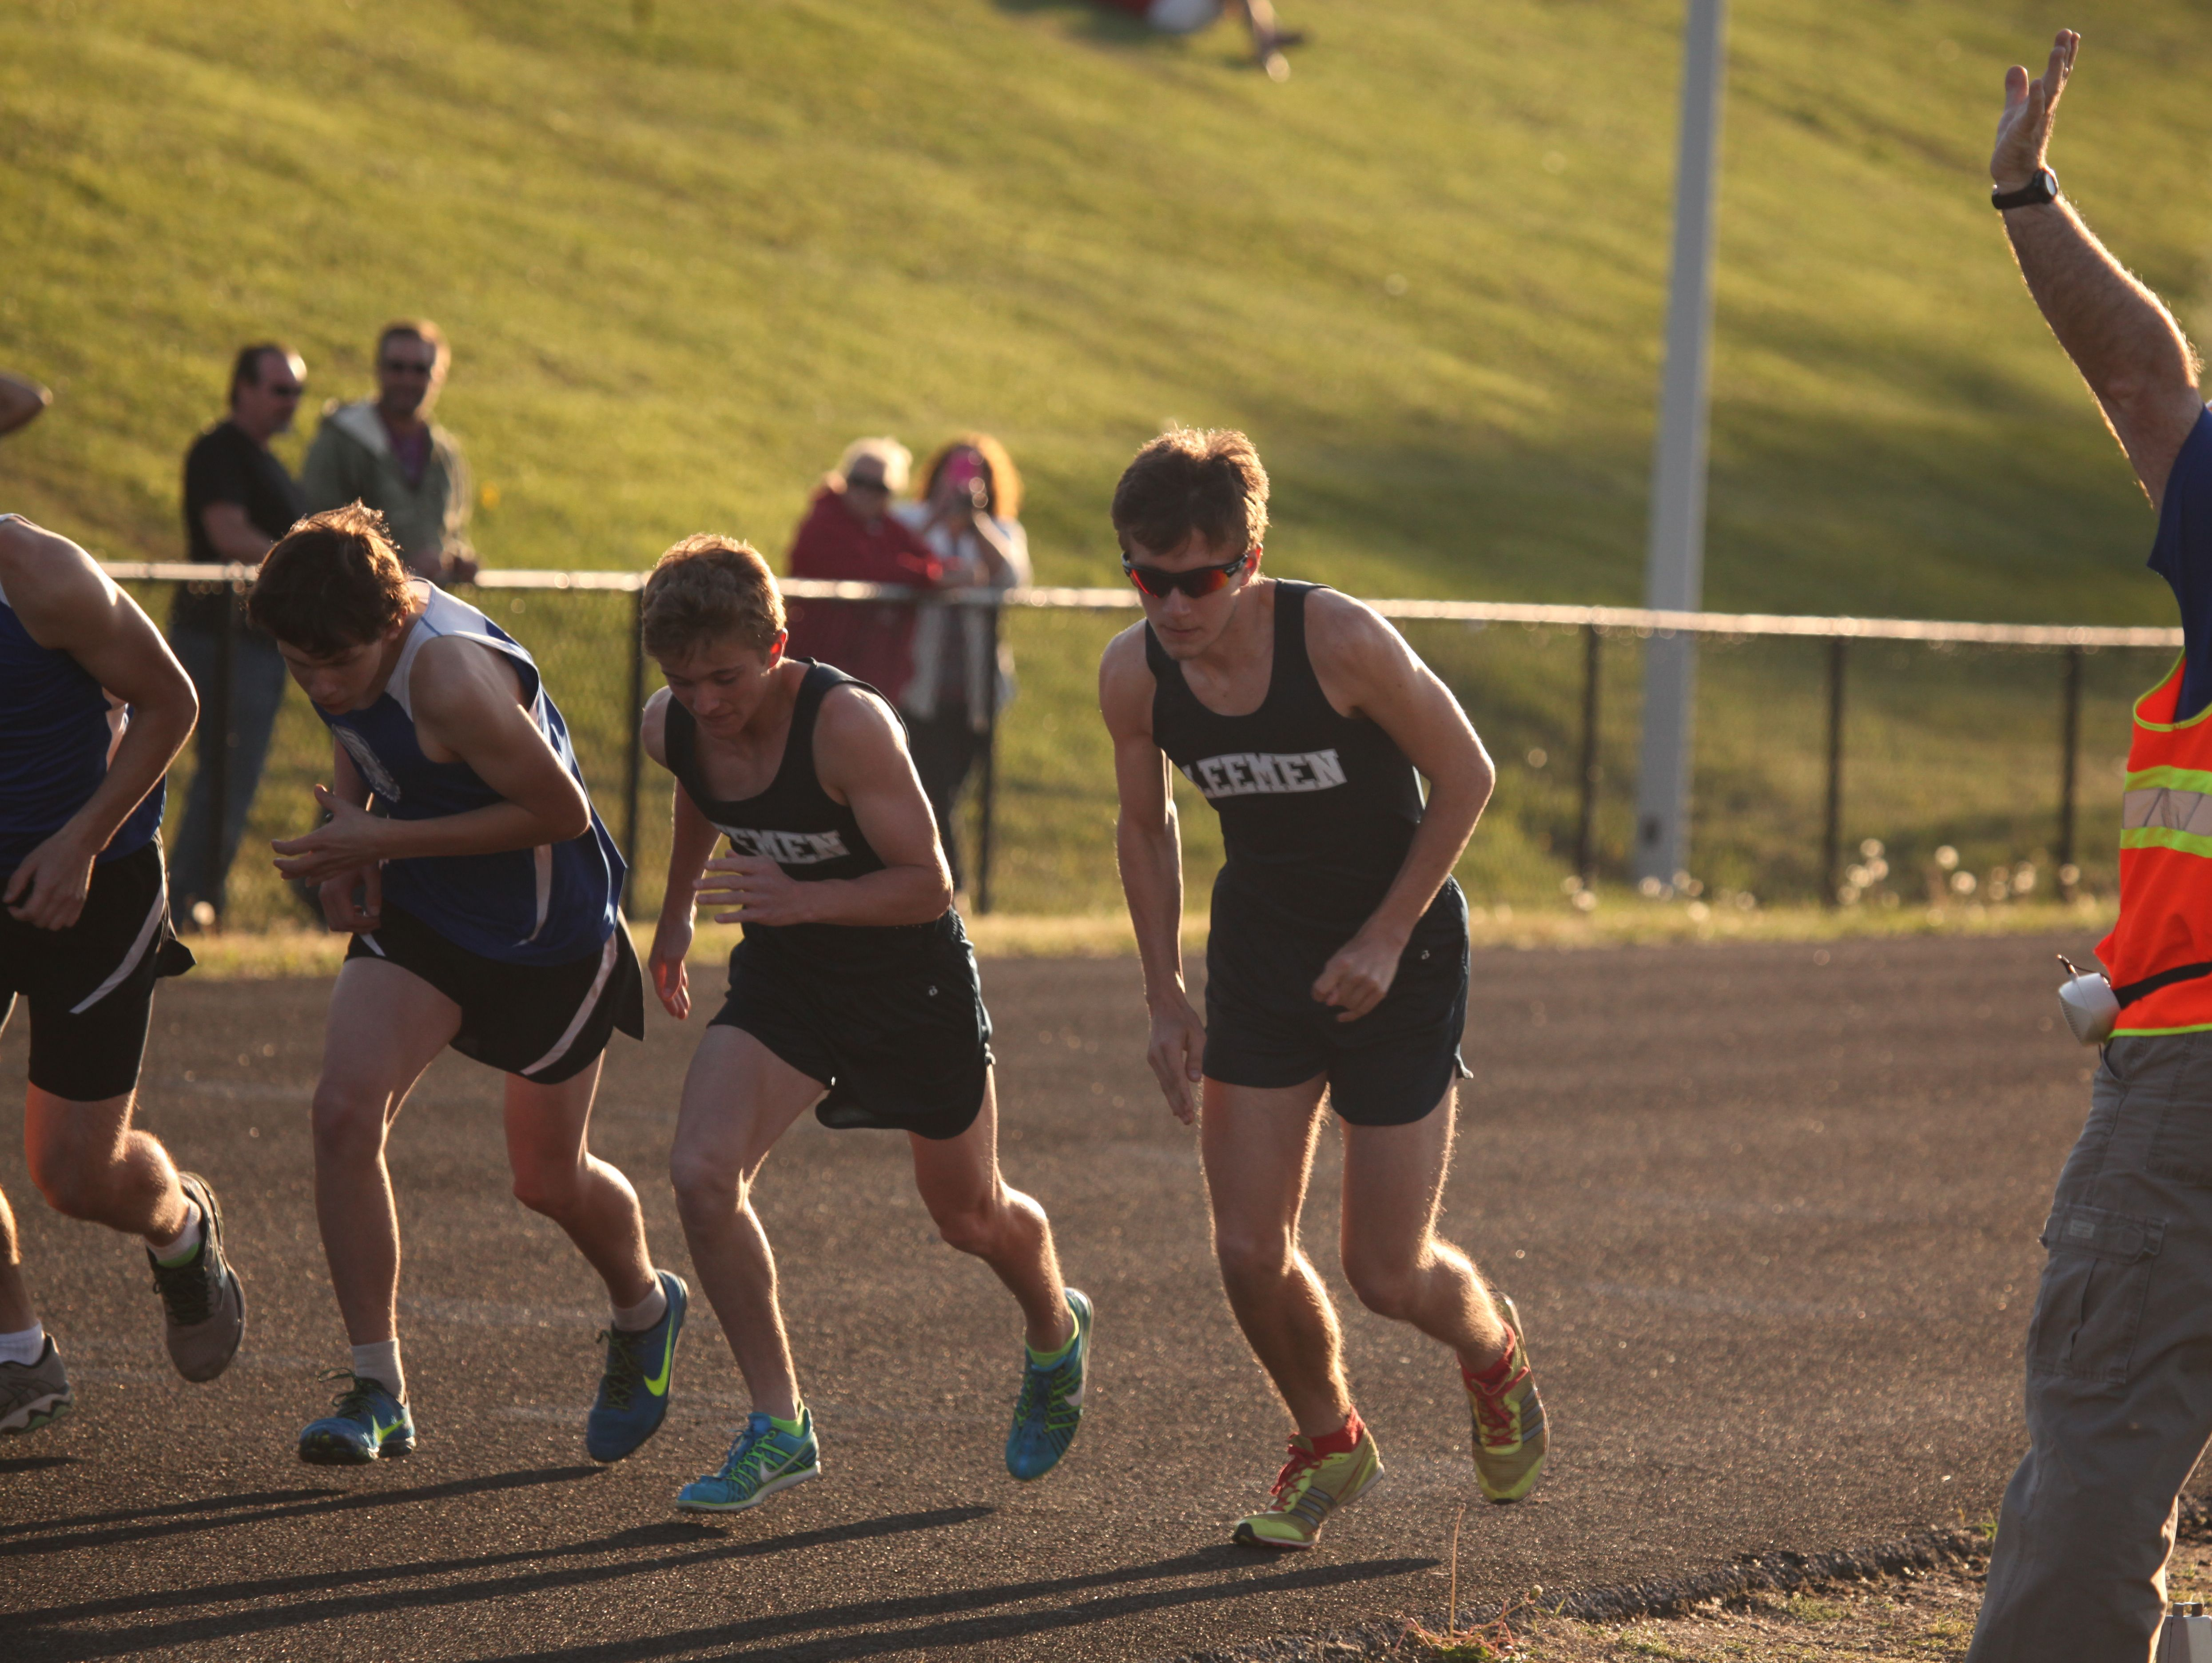 Robert E. Lee's Jacob Warner, right, and Oliver Wilson-Cook, left, take off for the start of the boys 1,600-meter run at Wednesday's Valley District mini meet at Robert E. Lee High School.